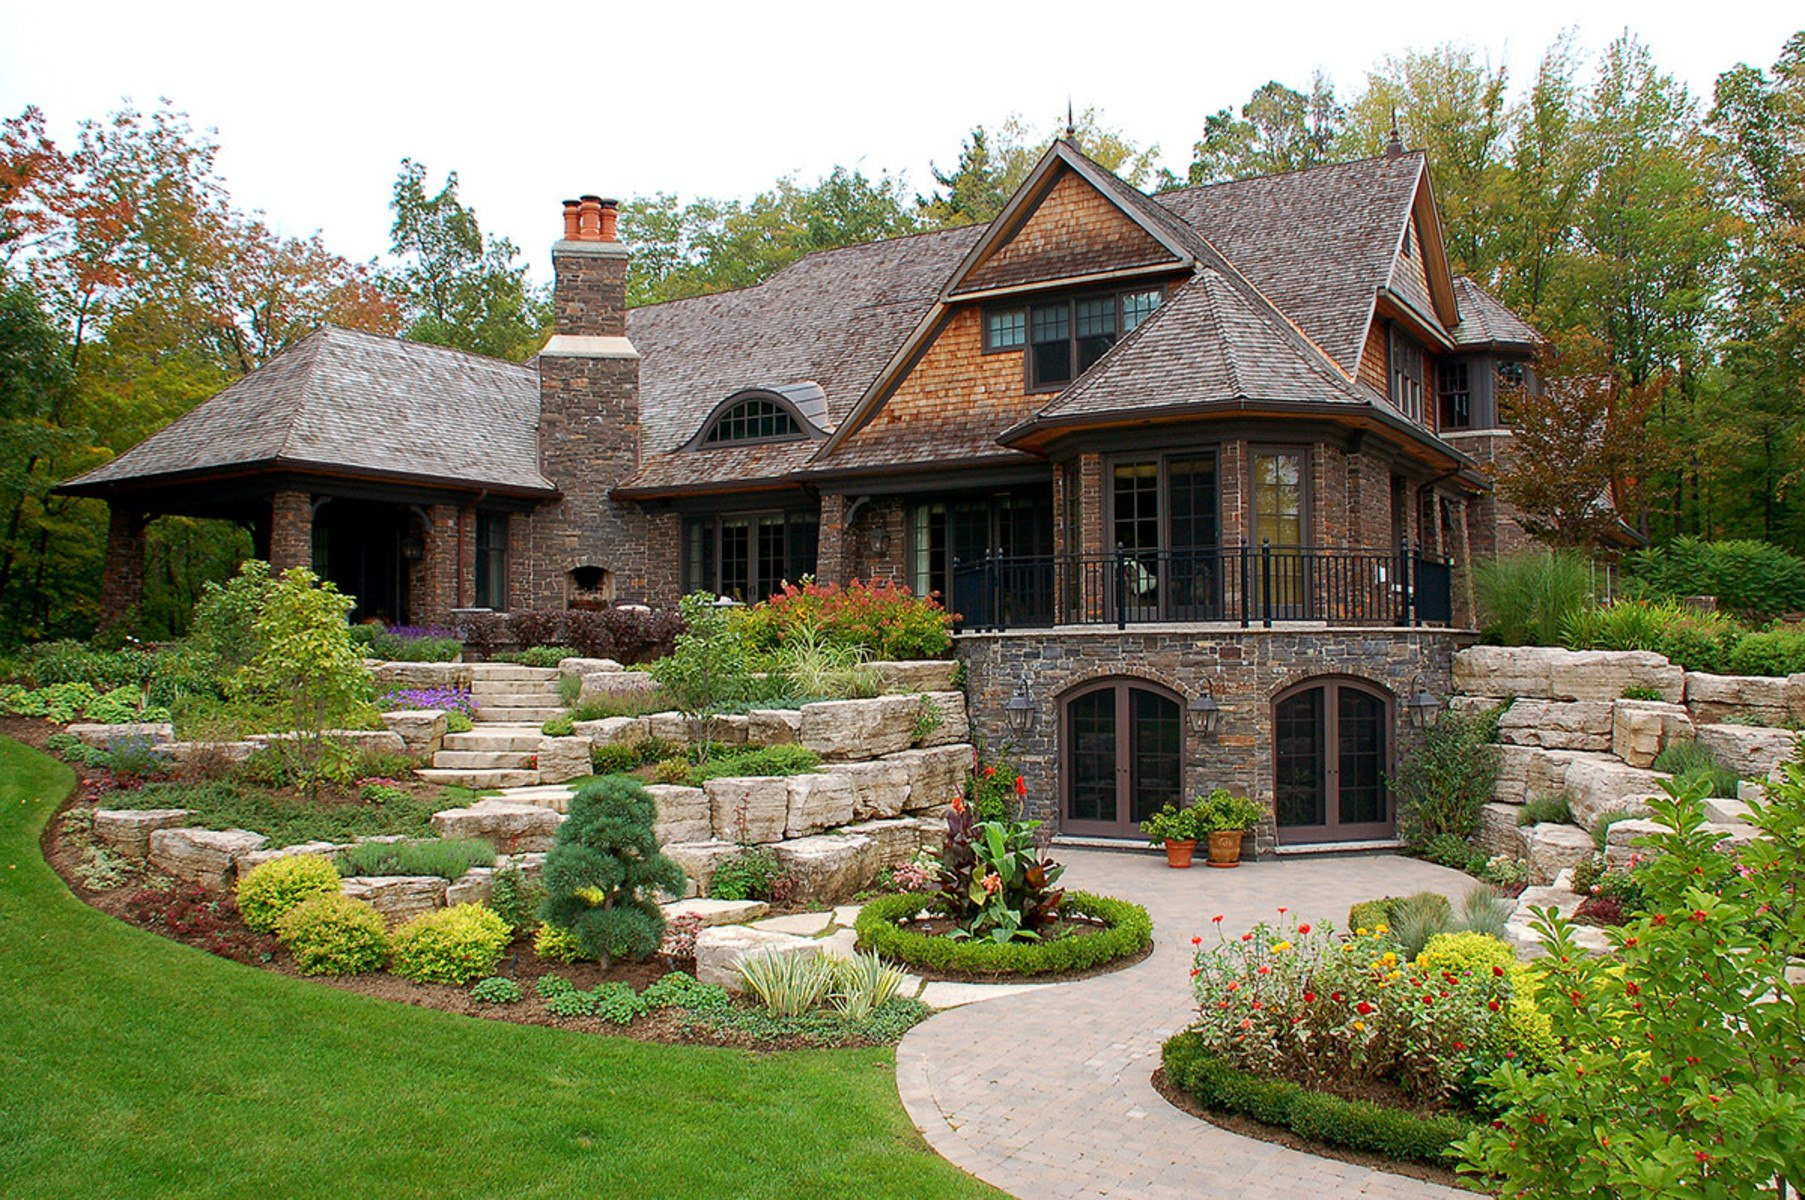 Georgia Garden: Luxury Landscaping Georgia